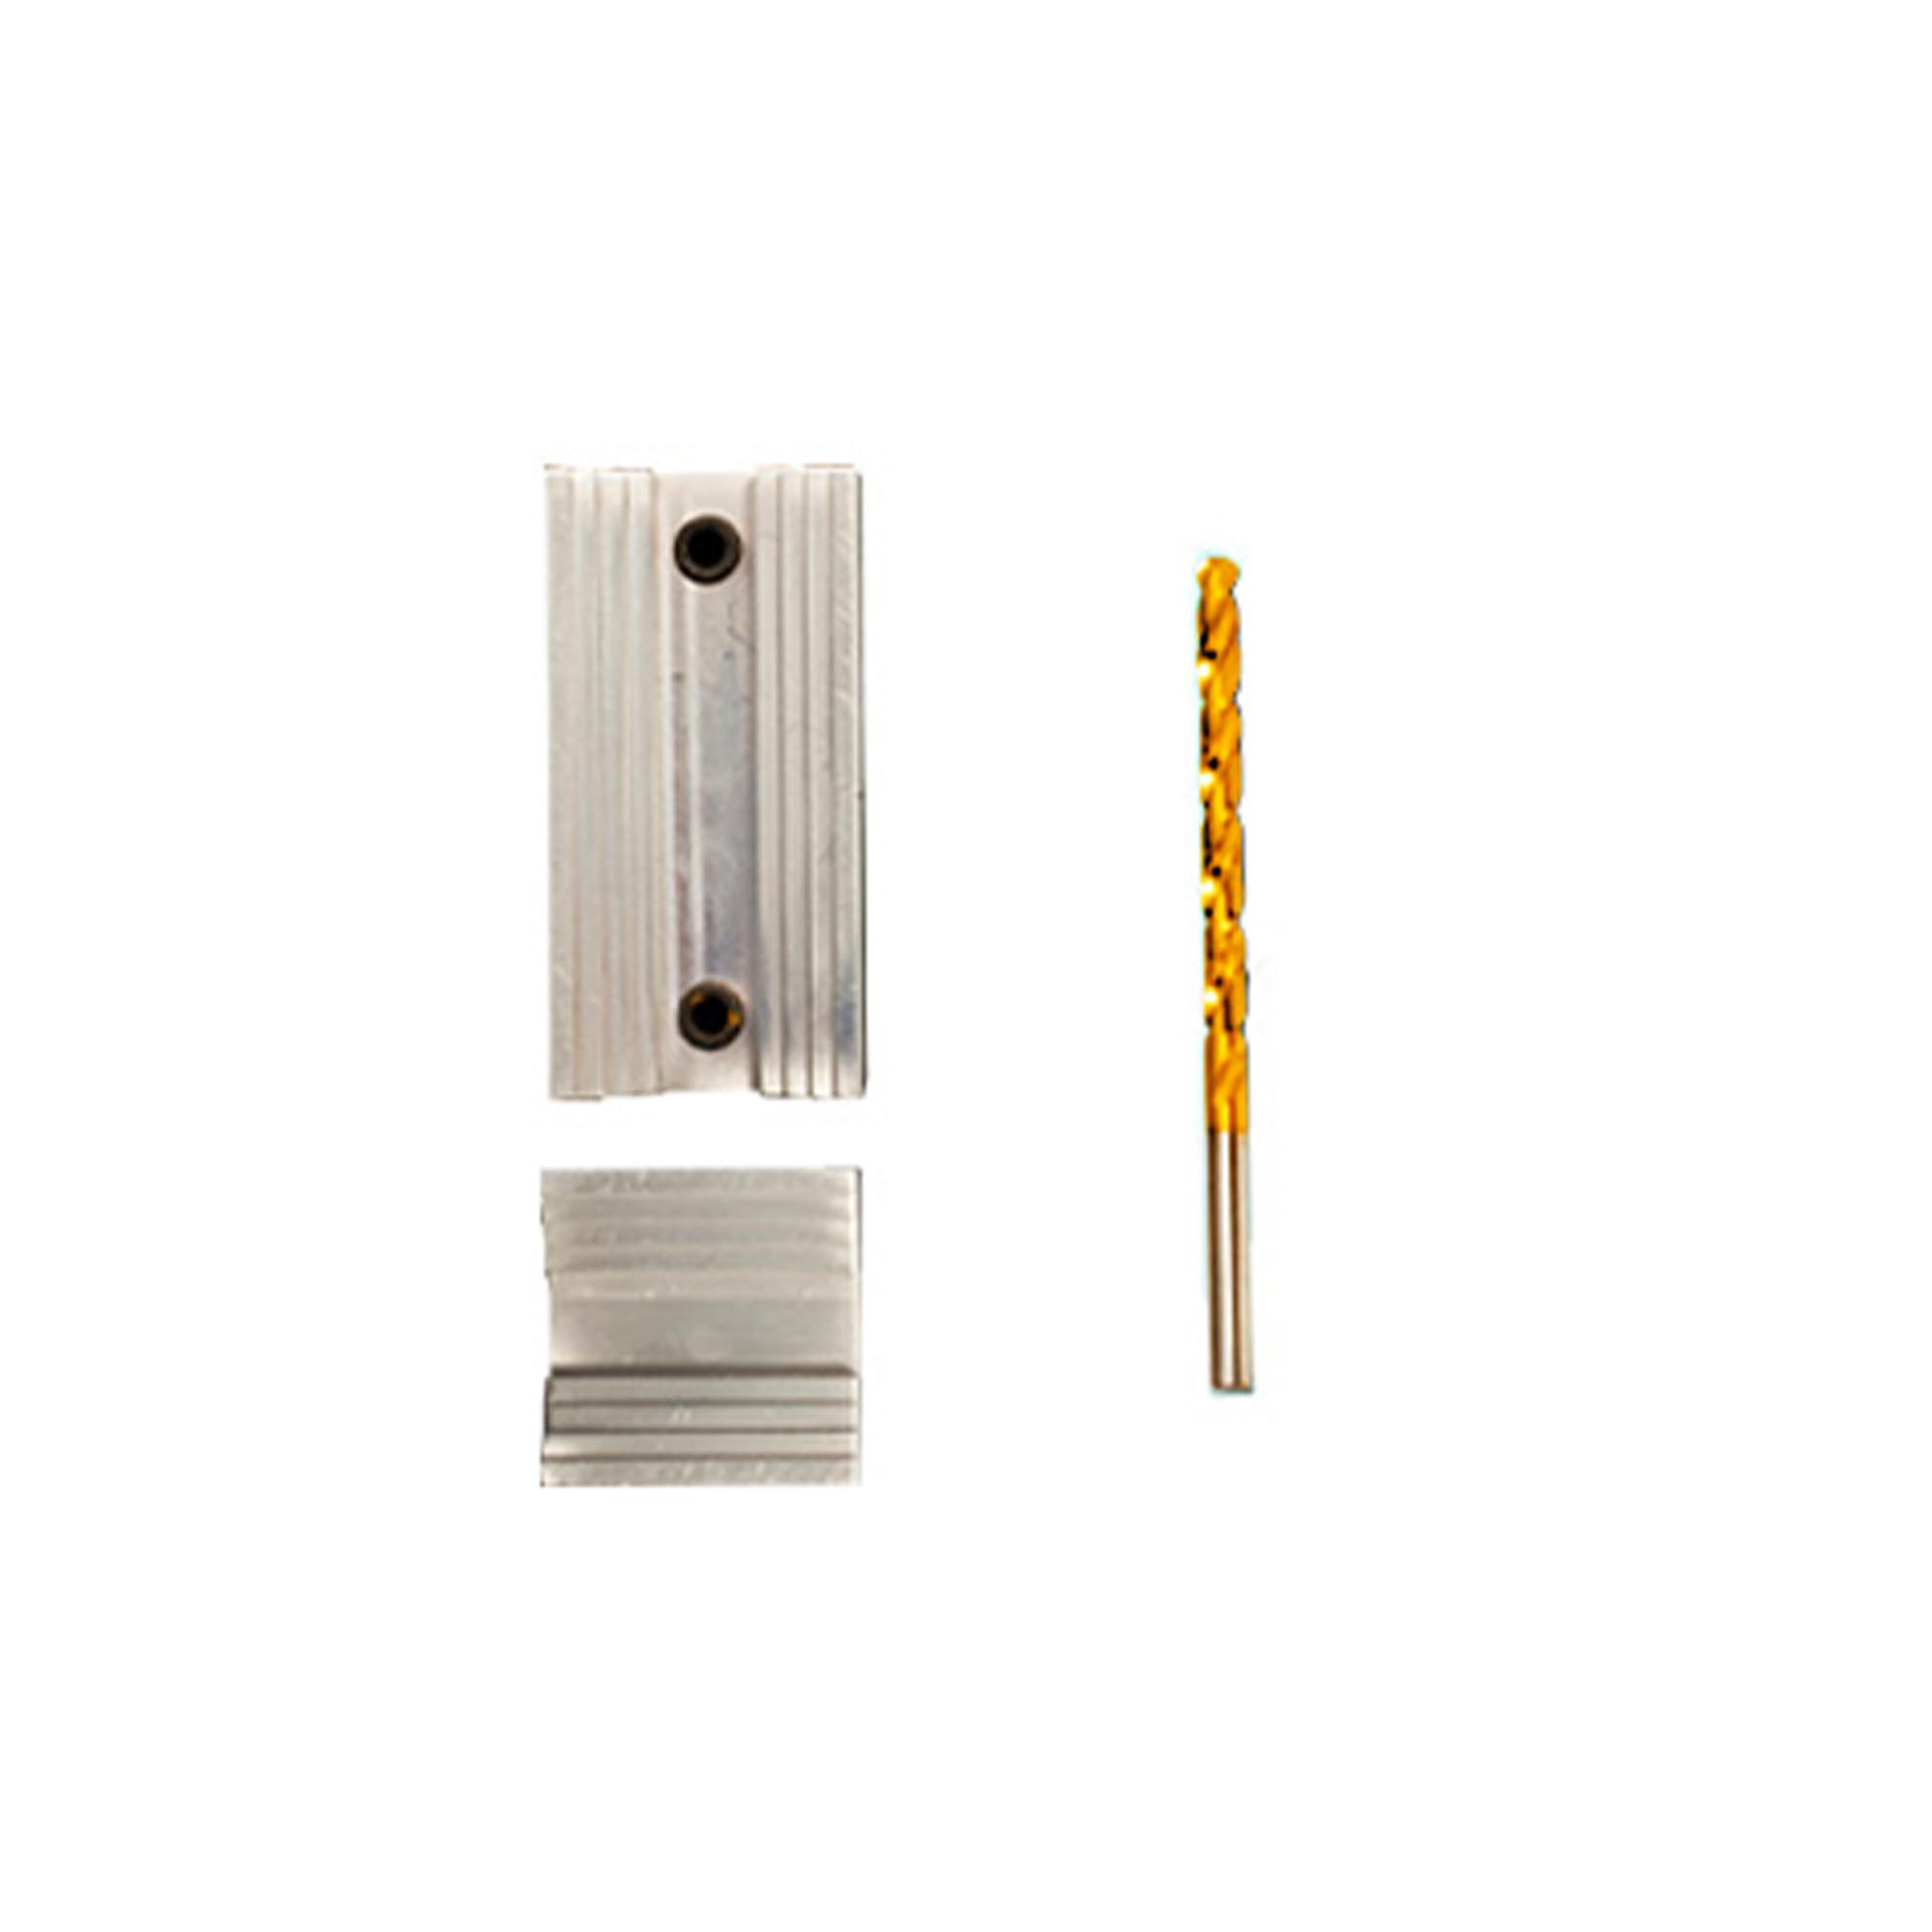 The Drill Guide Kit for the Digital Flowmeter includes a locating jig and drill bit.